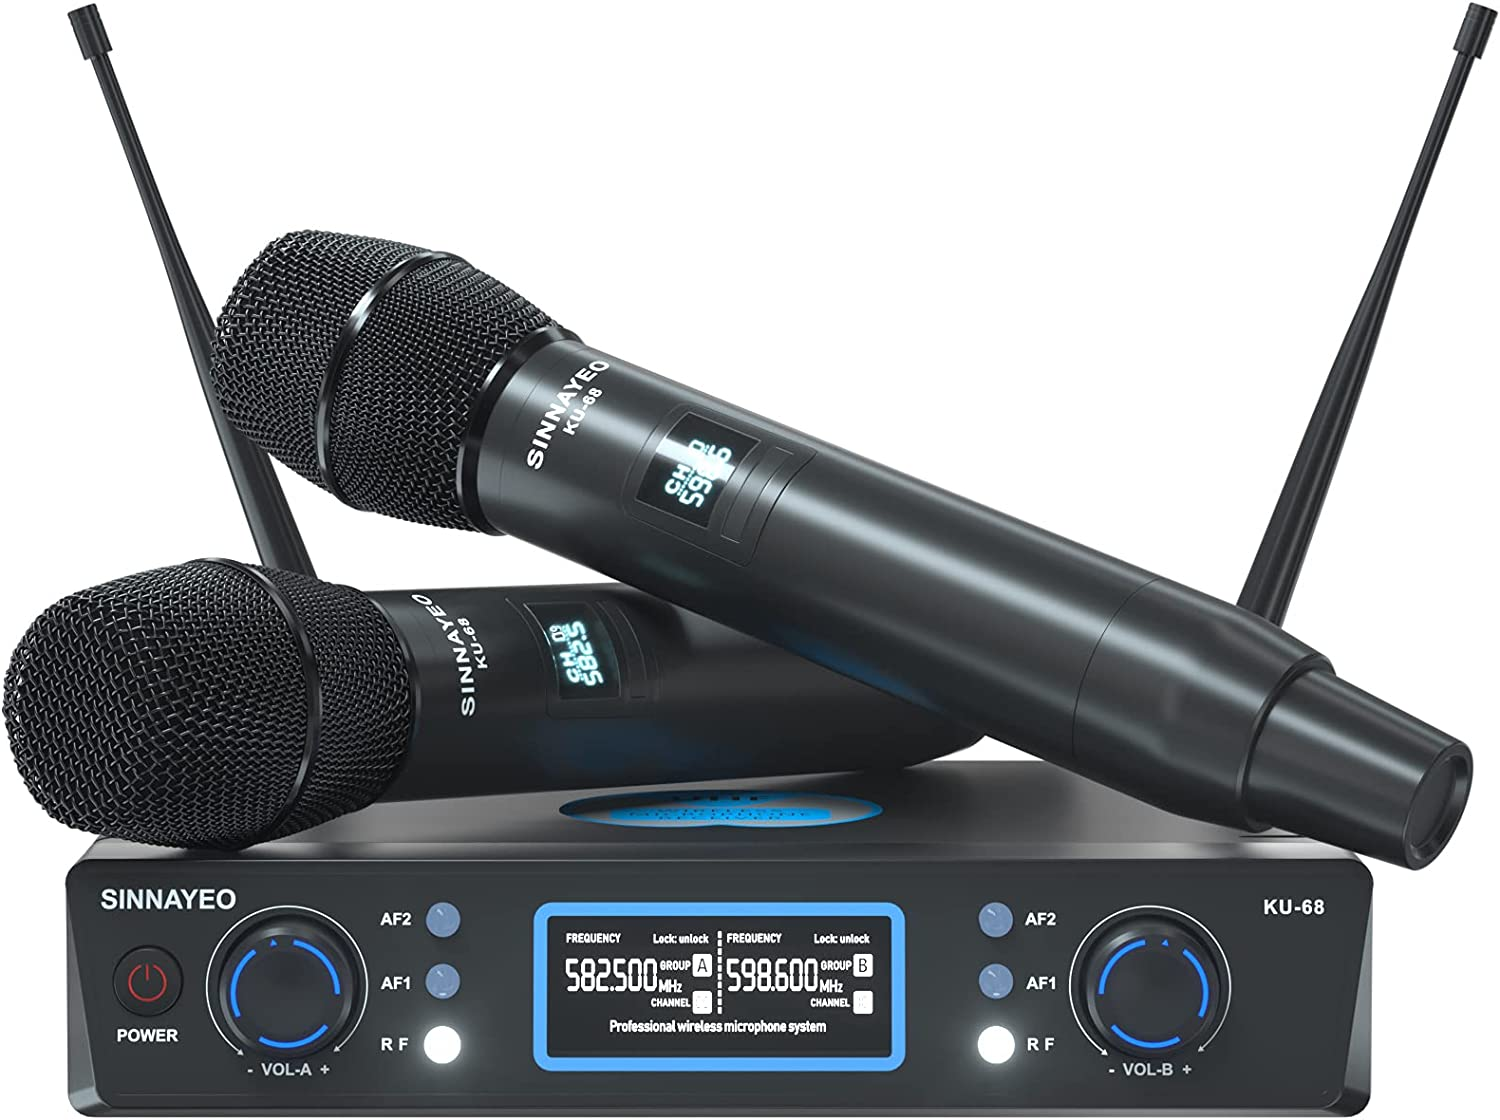 5 ☆ popular Wireless Microphone Sale System Professional Microphones UHF